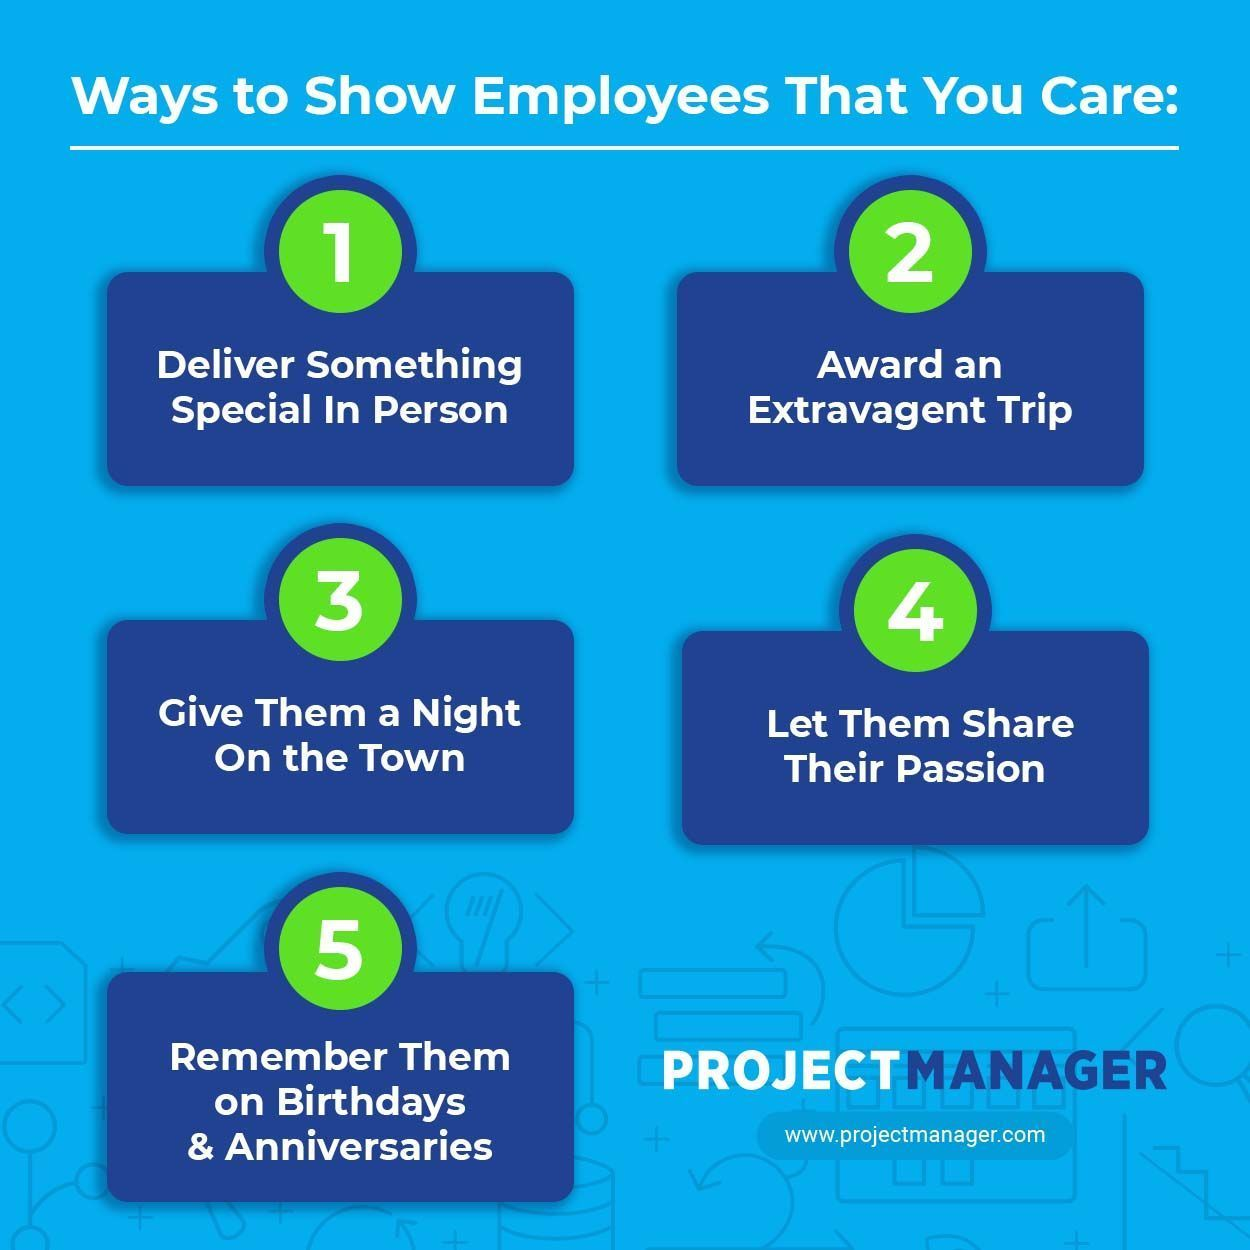 Employee Appreciation Ideas #employeeappreciationideas Employee Appreciation Ideas #employeeappreciationideas Employee Appreciation Ideas #employeeappreciationideas Employee Appreciation Ideas #employeeappreciationideas